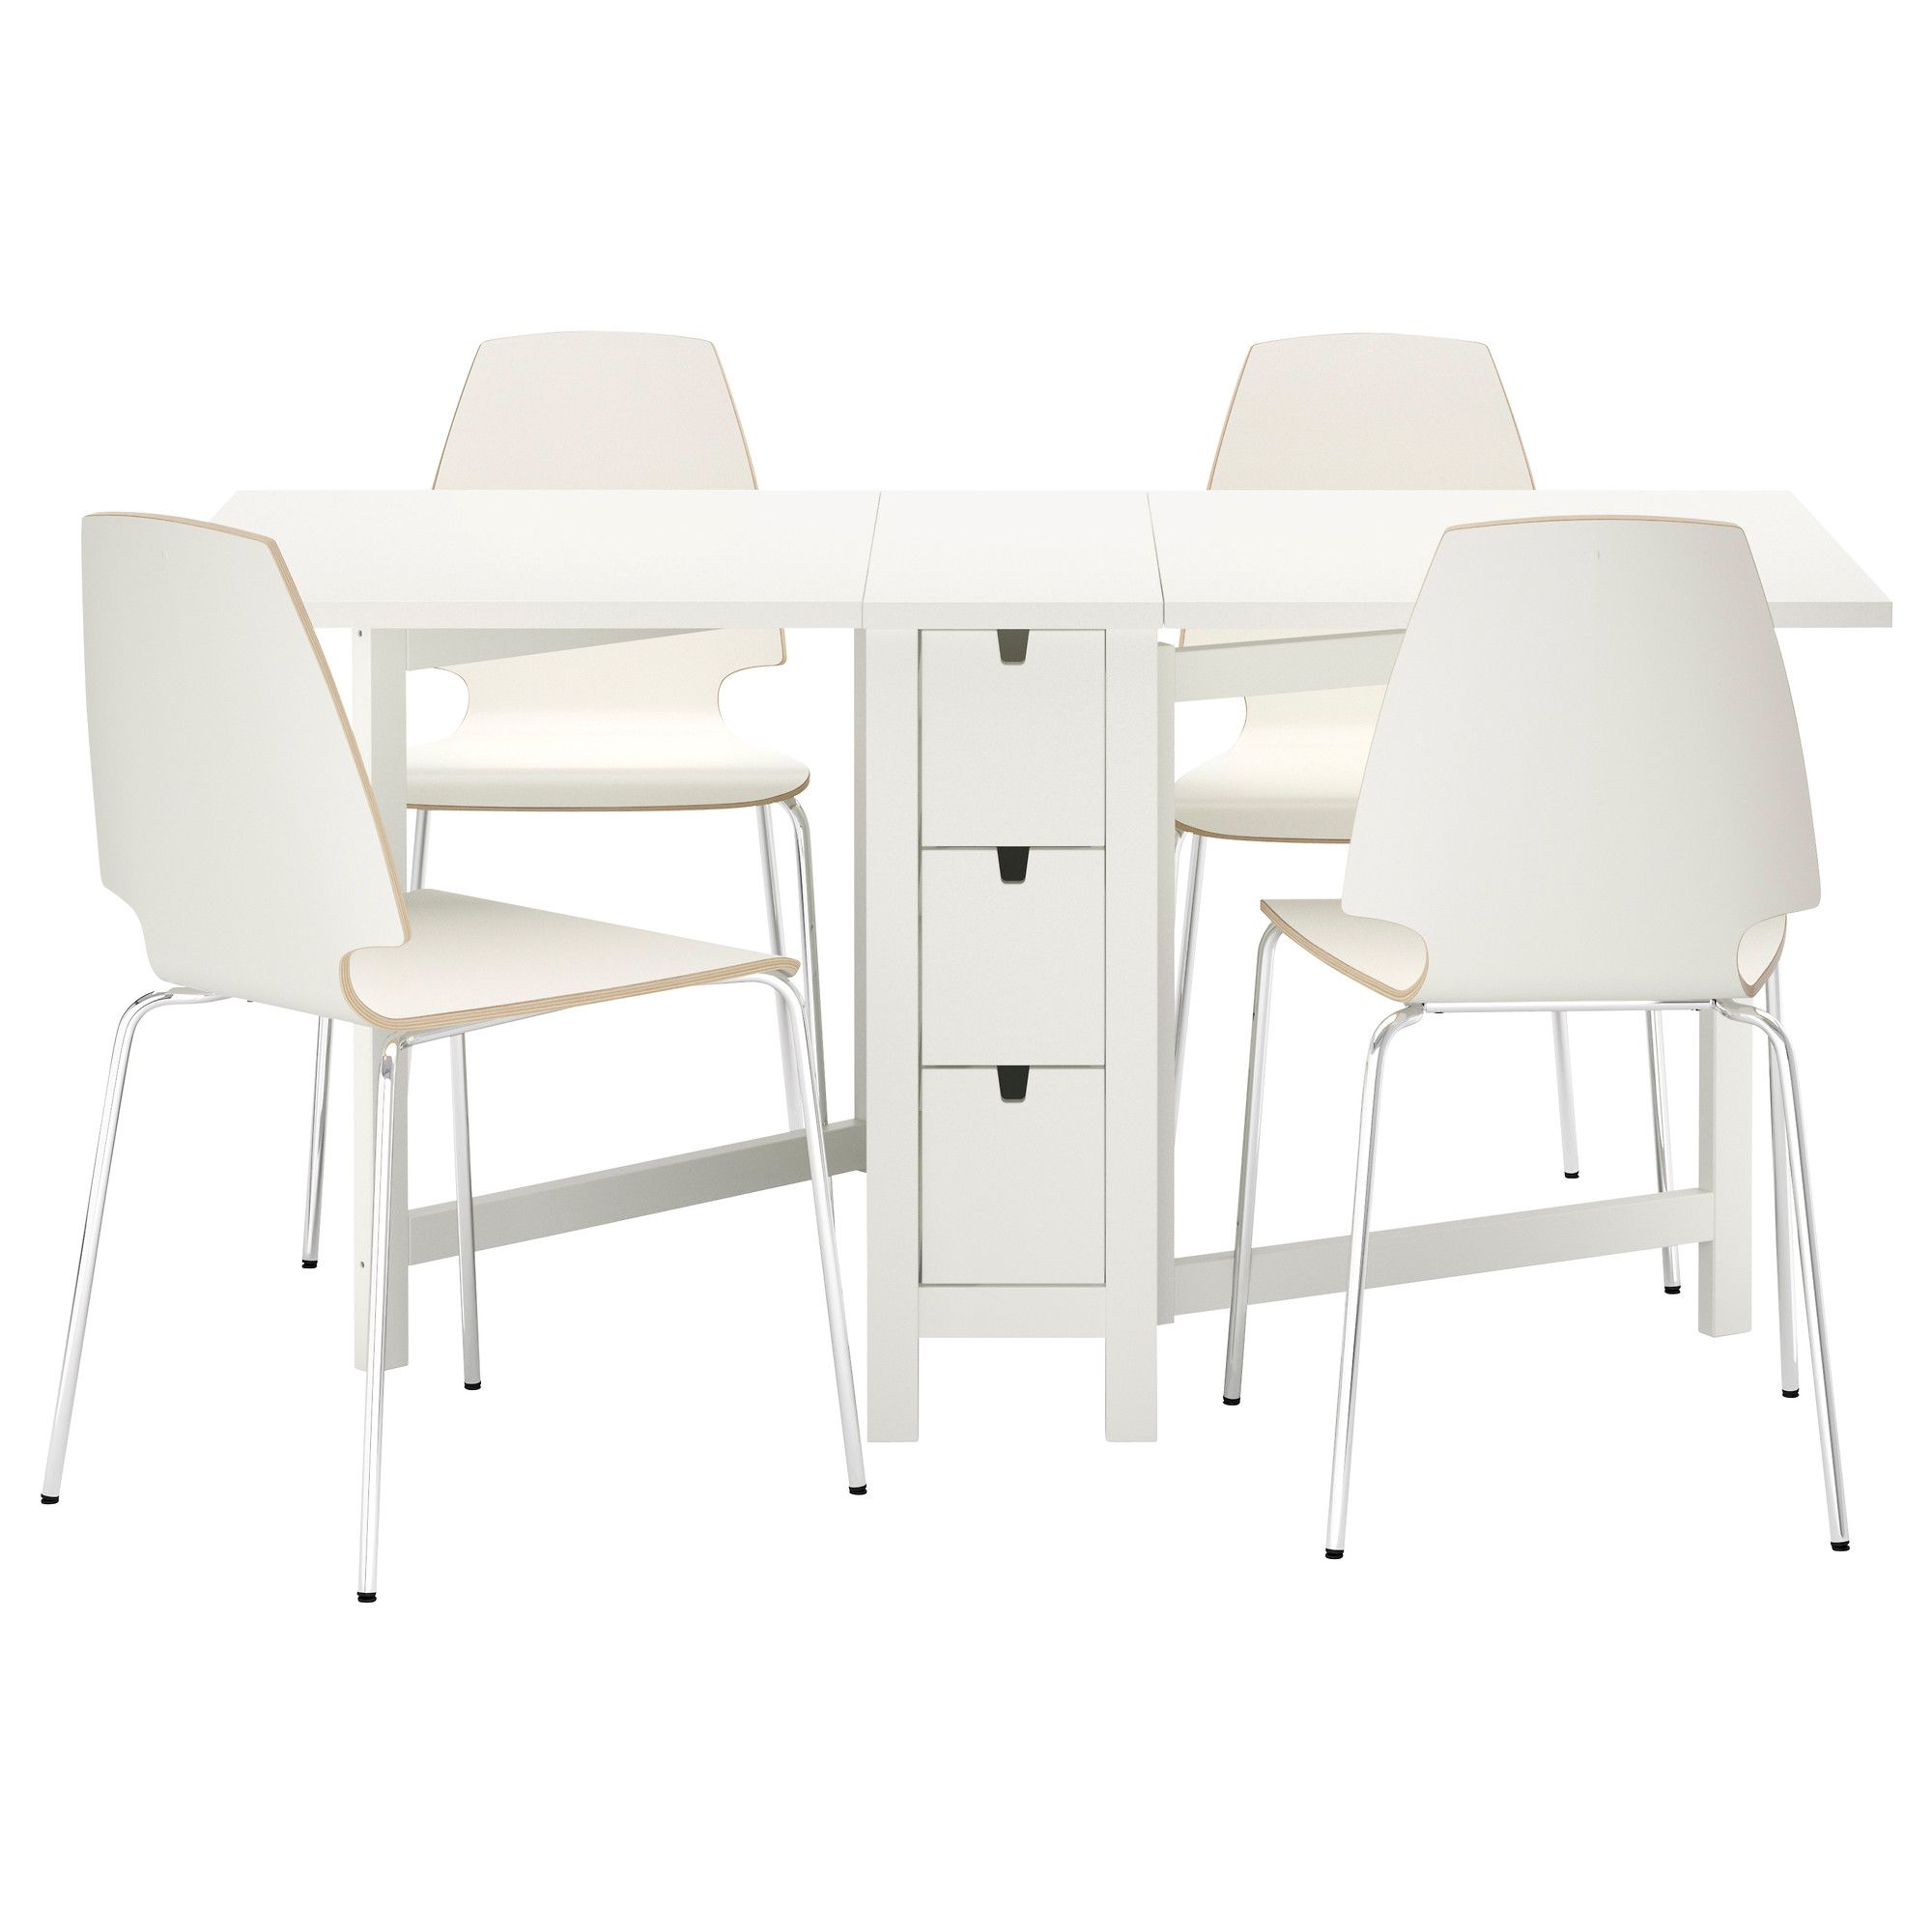 Collapsible dining table stack able chairs and storage for Small dining table with storage